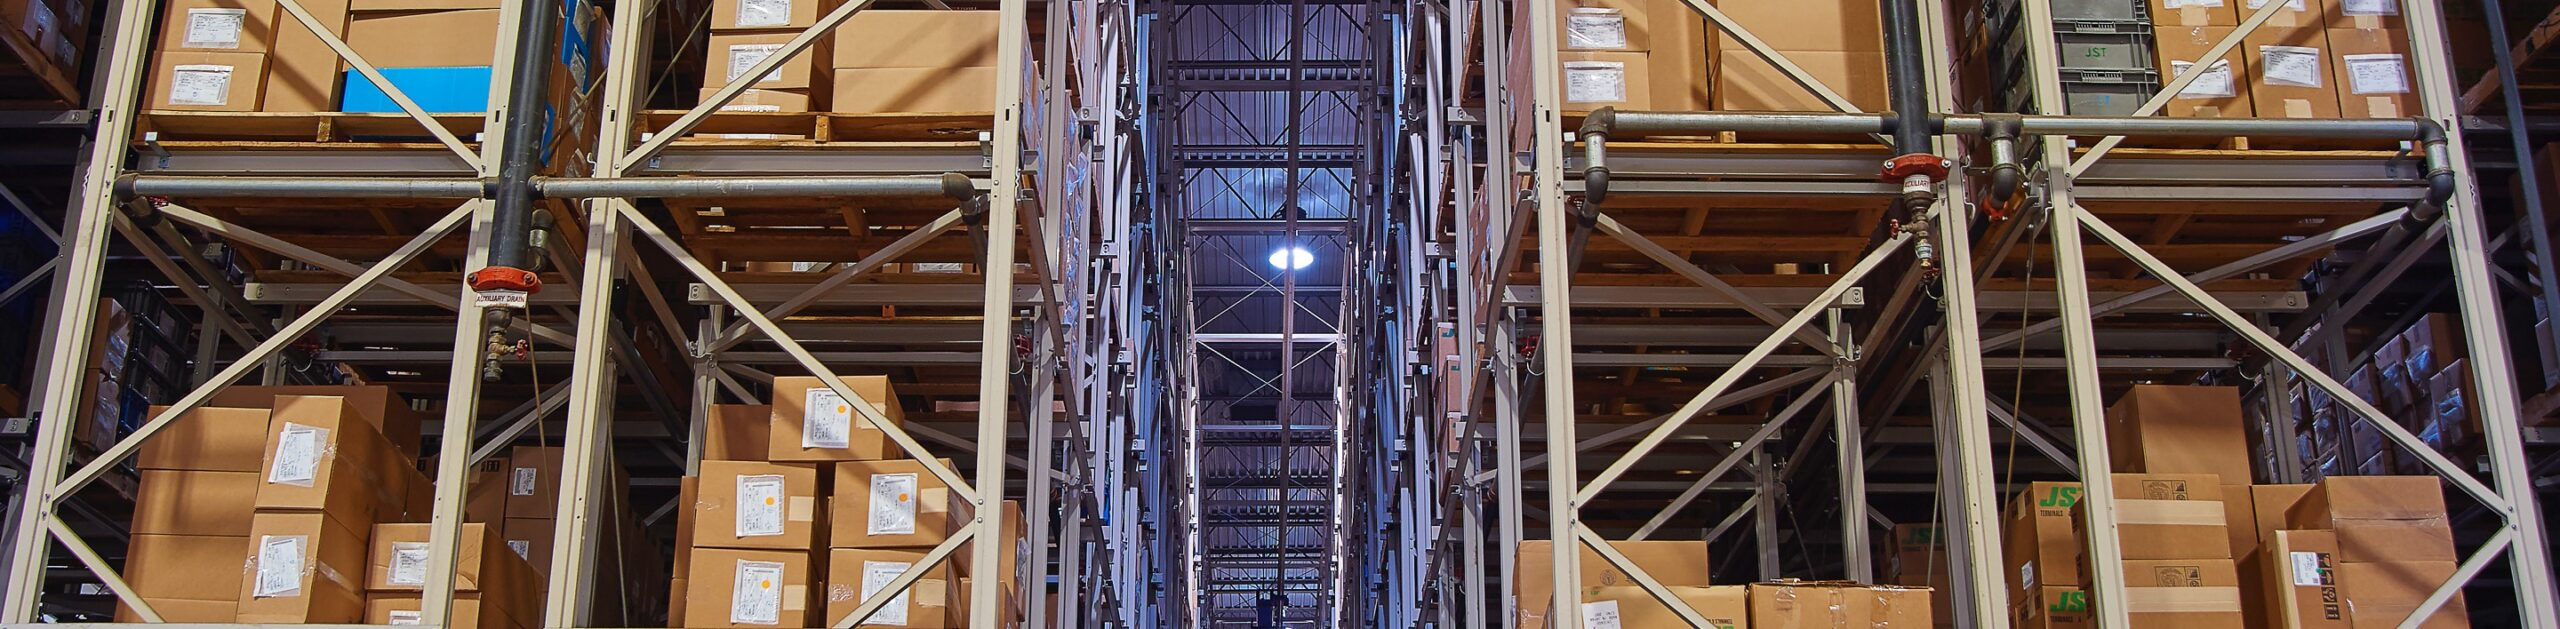 Boxes on large rows of shelving in the JST warehouse